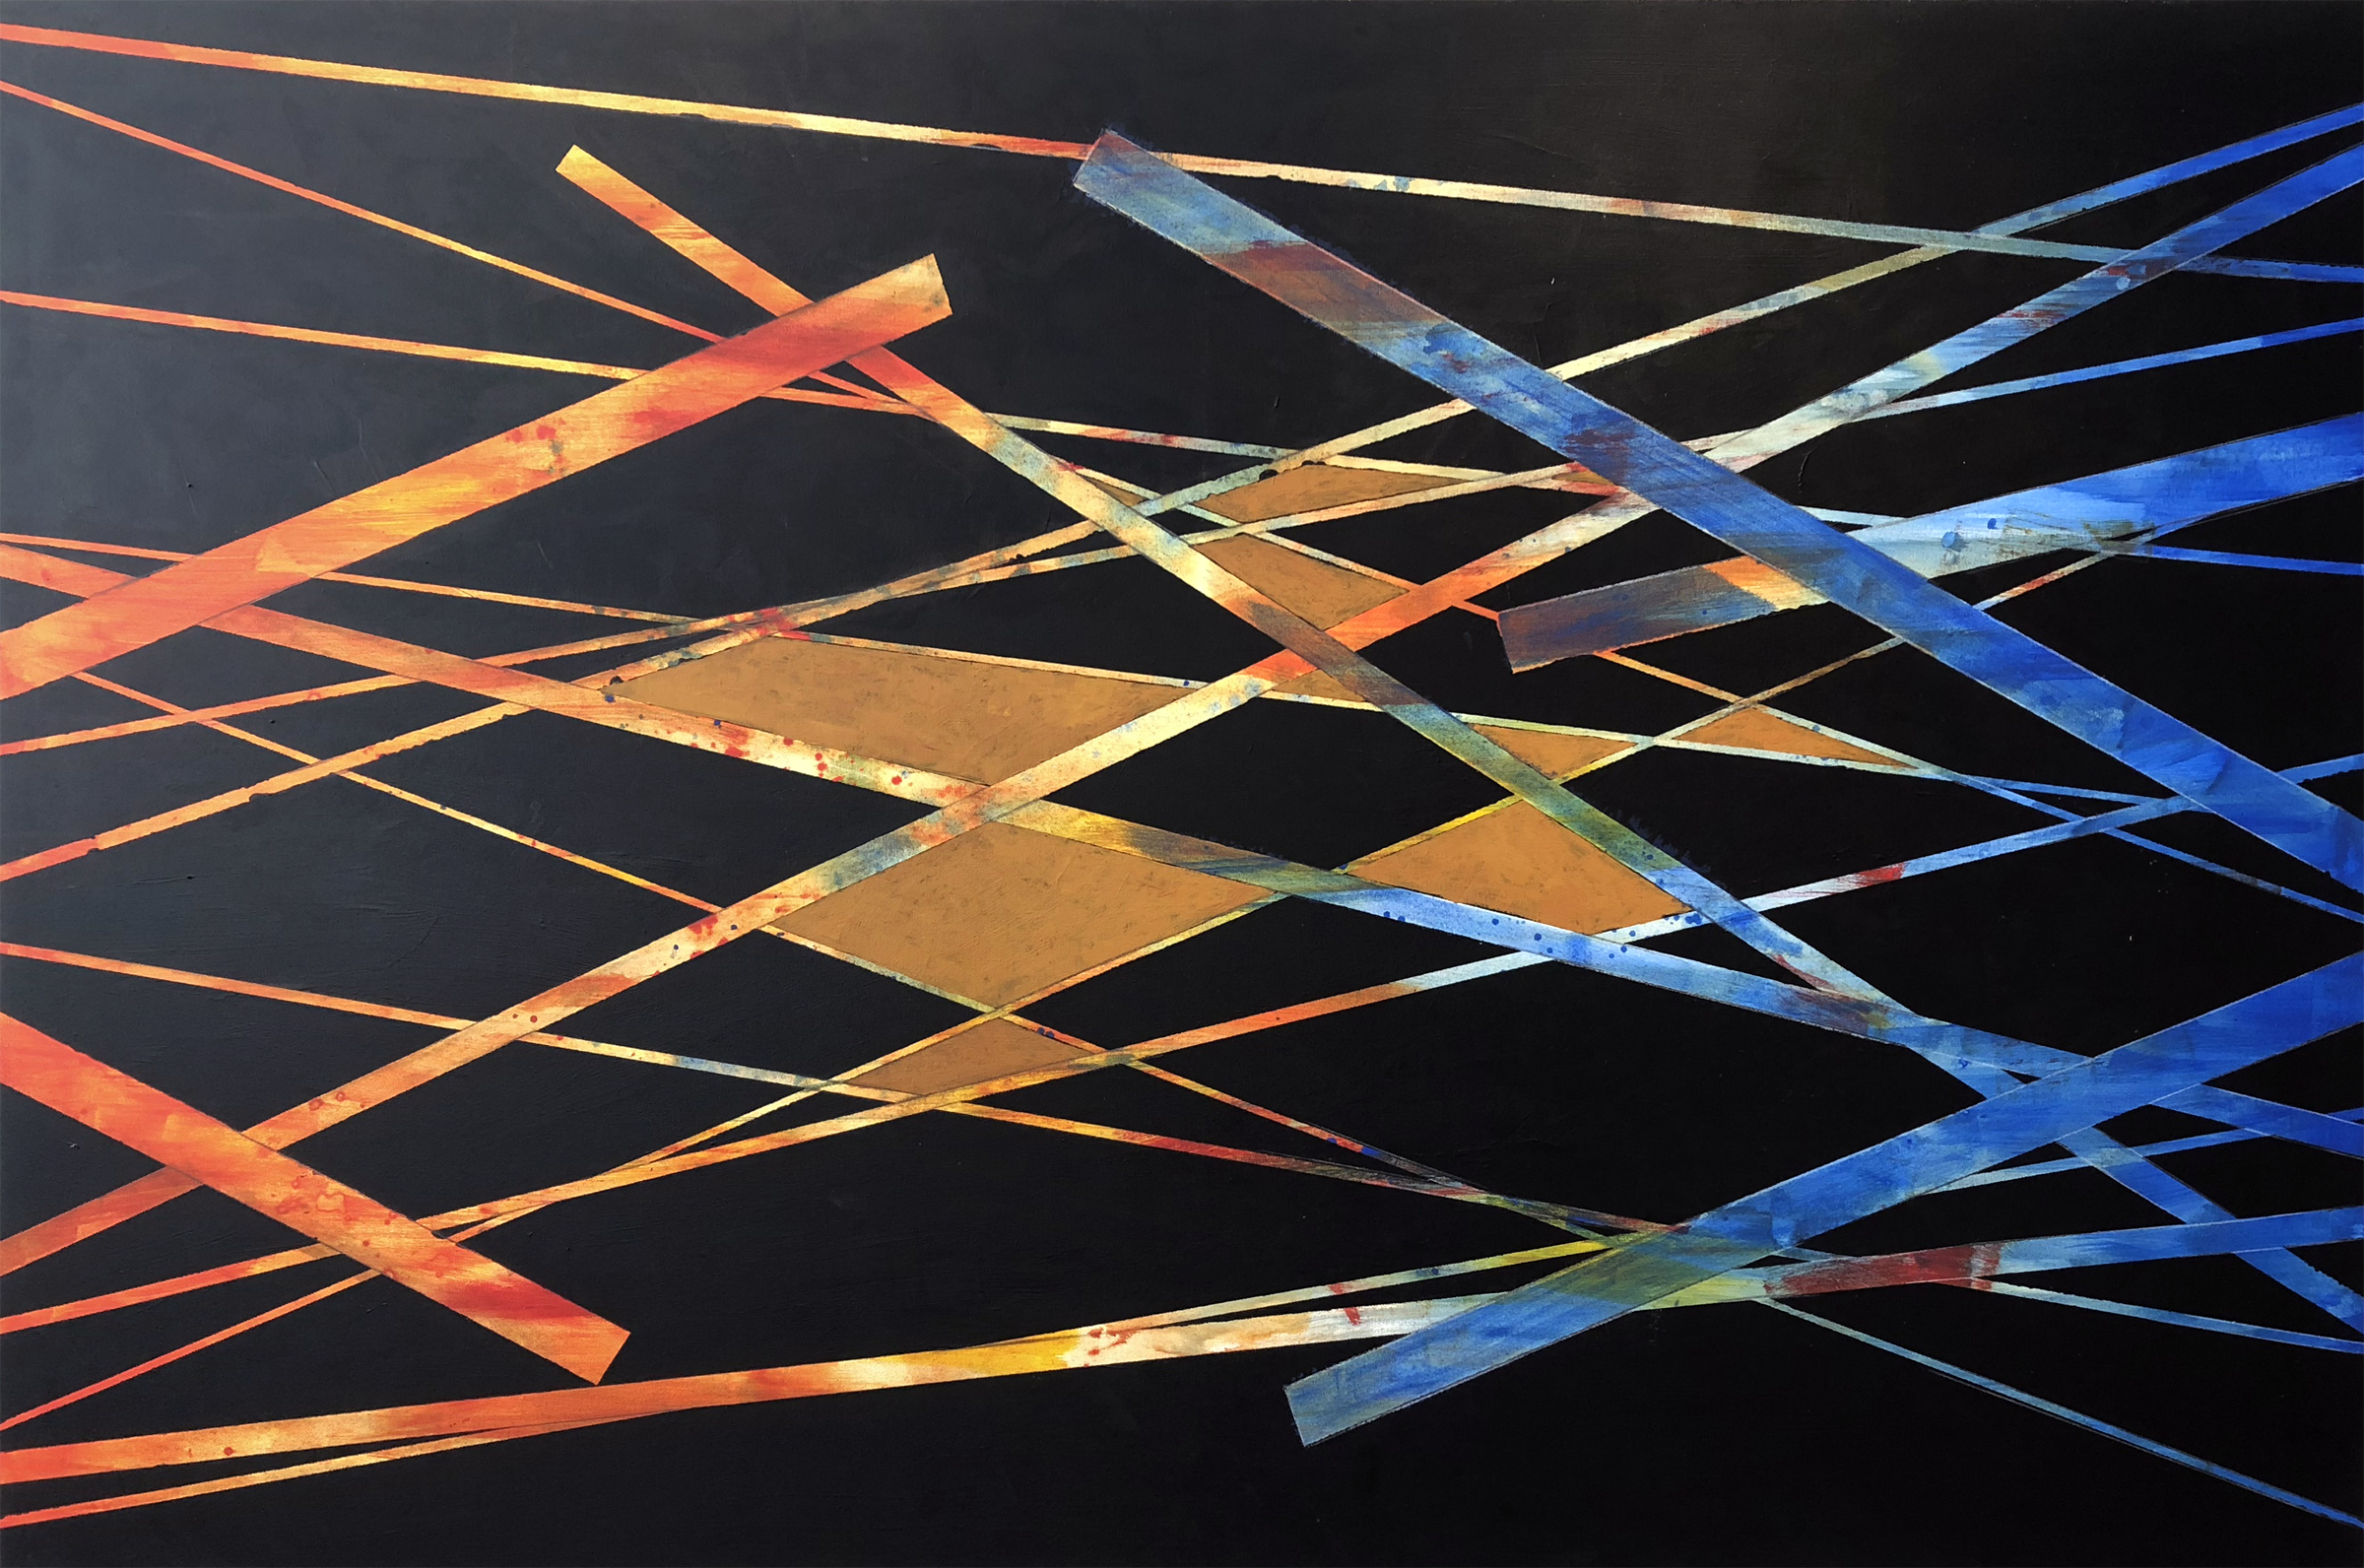 Dirty Geometry, 48 x 72 inches / 122 x 183 cm, acrylic on canvas, 2013